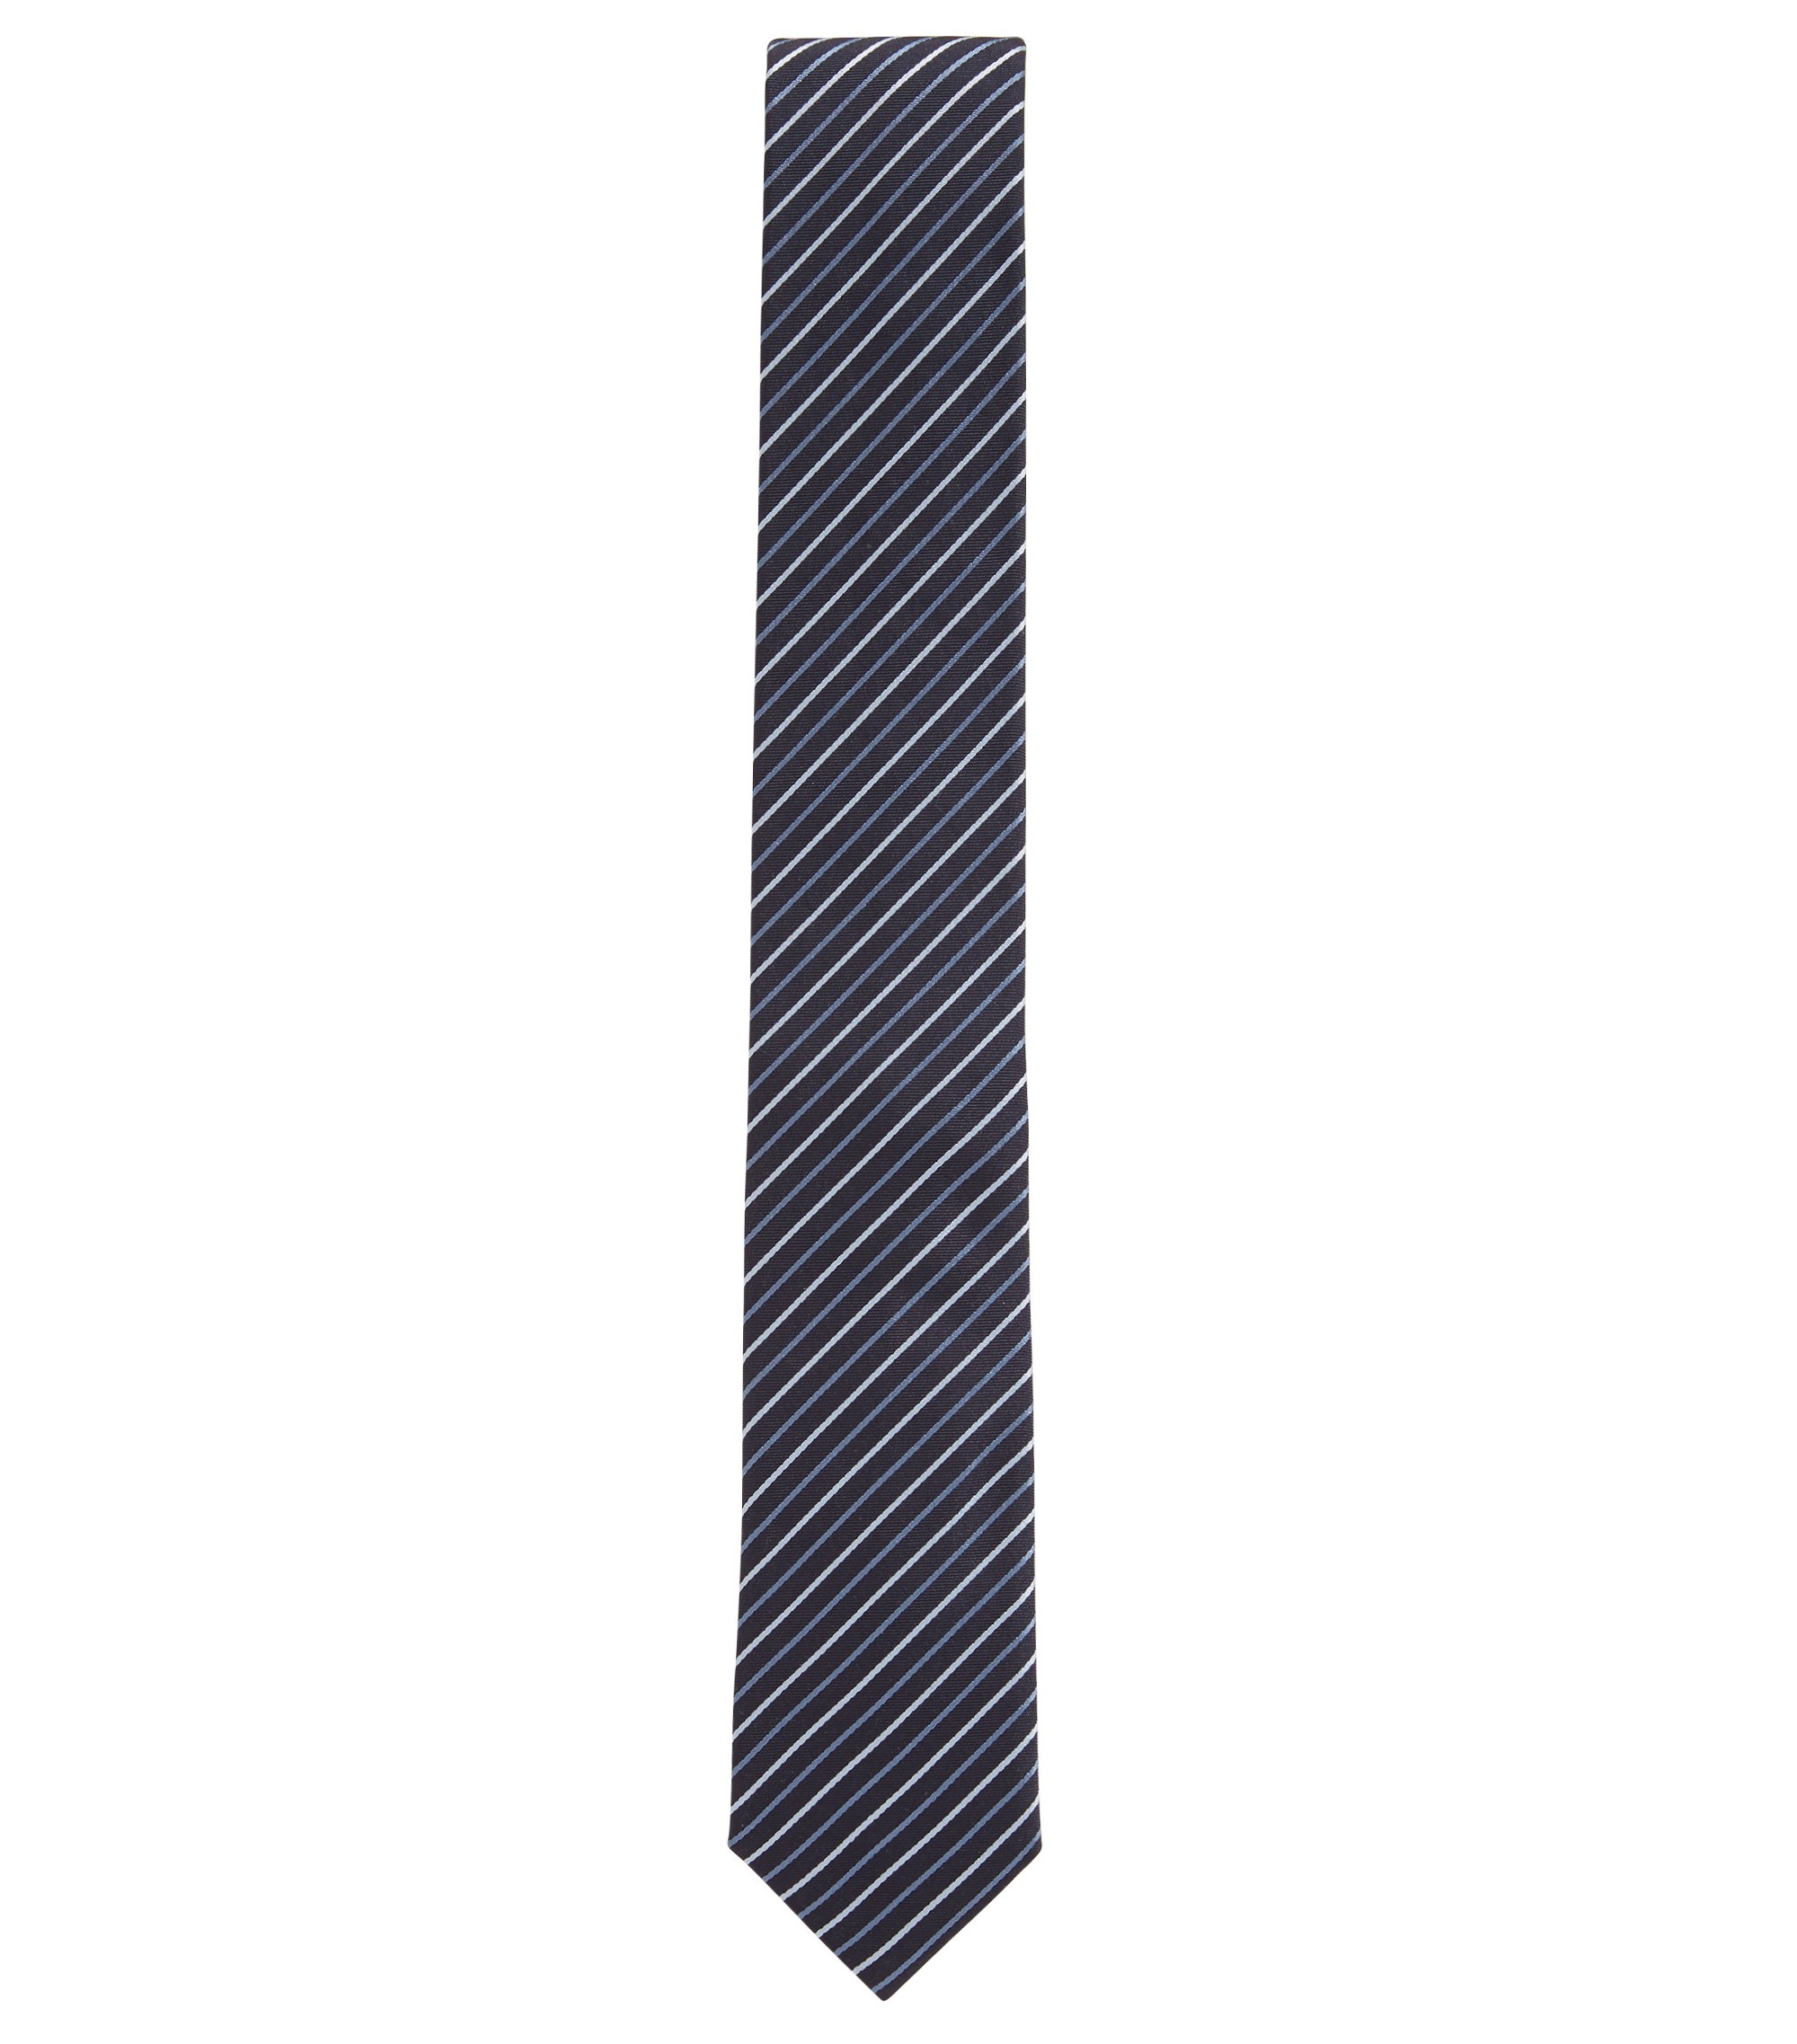 Diagonal striped tie in silk jacquard, Patterned